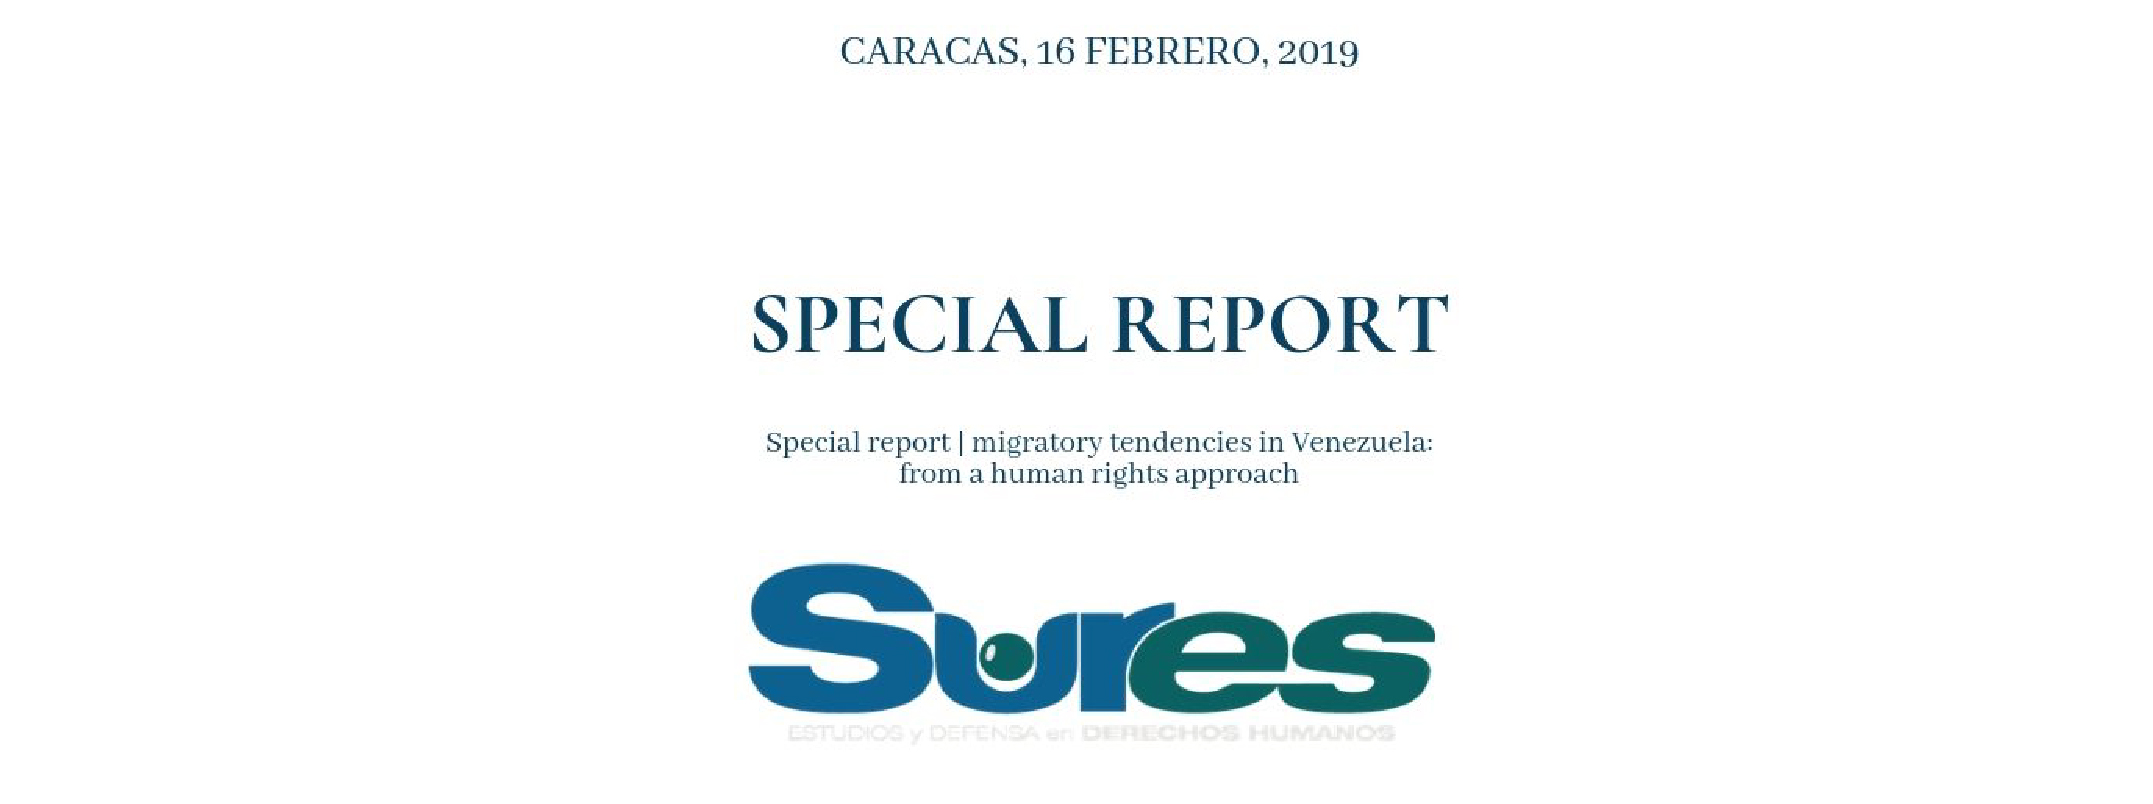 SPECIAL REPORT | MIGRATORY TENDENCIES IN VENEZUELA: FROM A HUMAN RIGHTS APPROACH